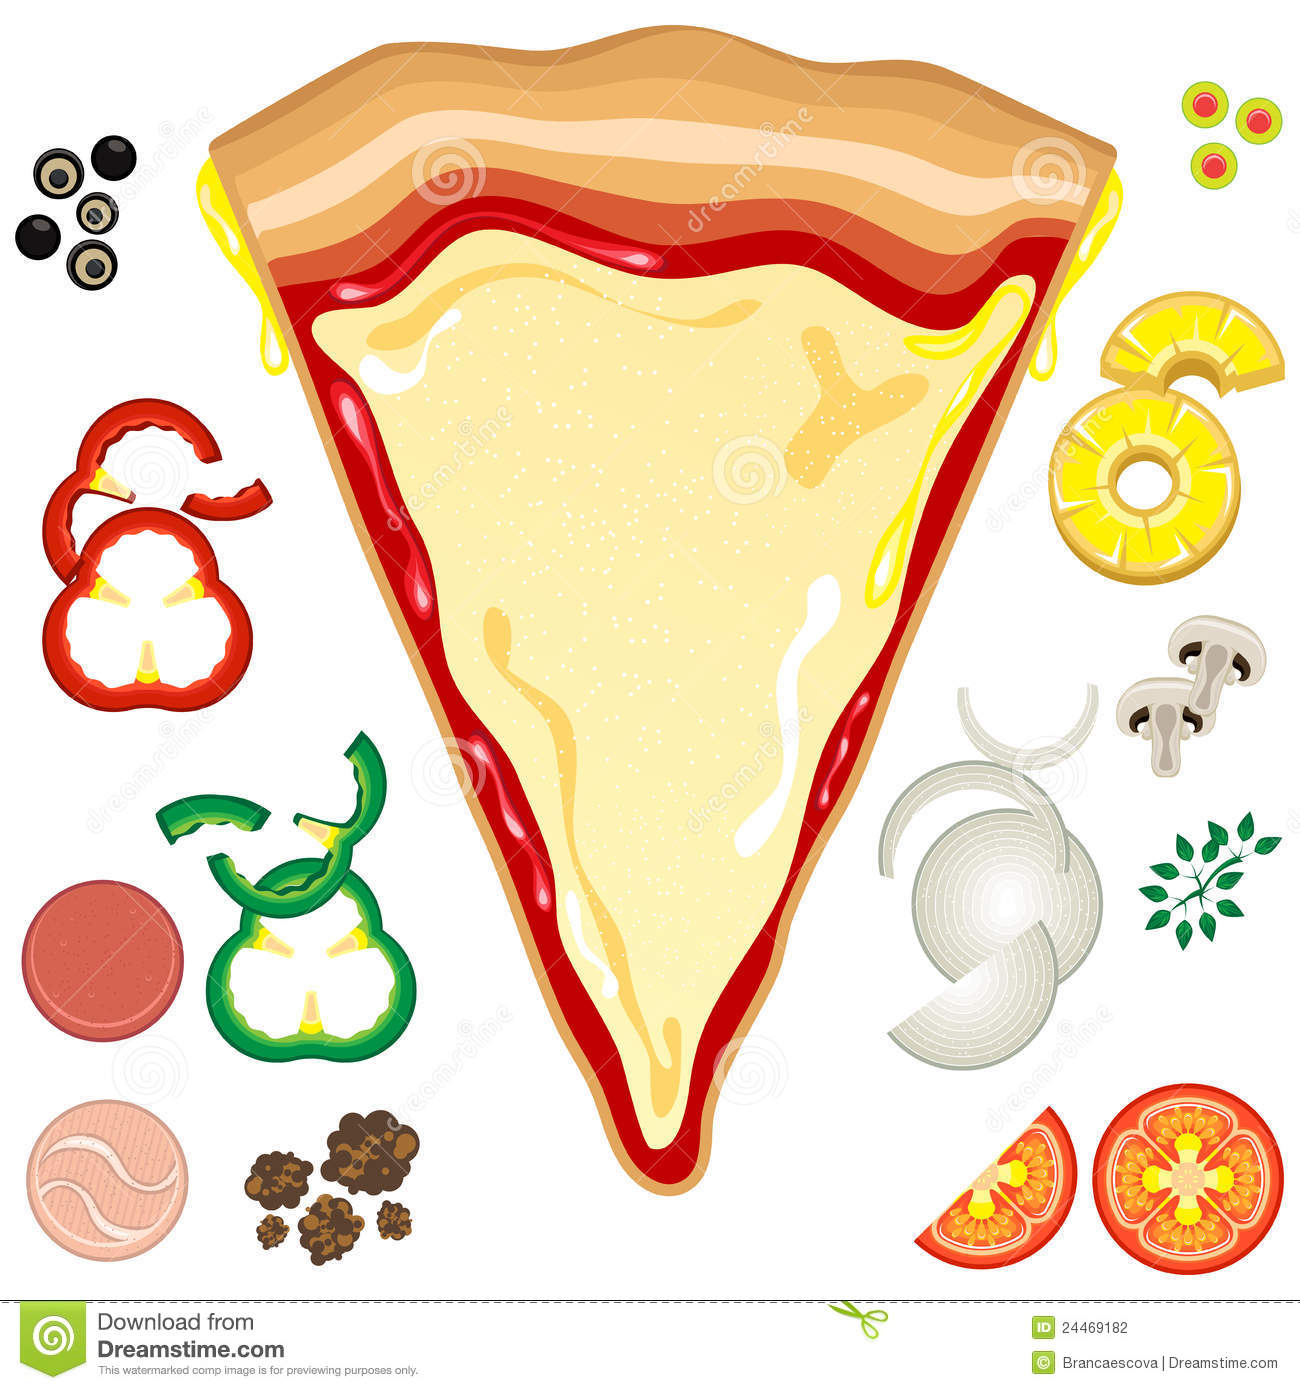 graphic relating to Printable Pizza Toppings named Pizza Toppings inventory vector. Instance of element